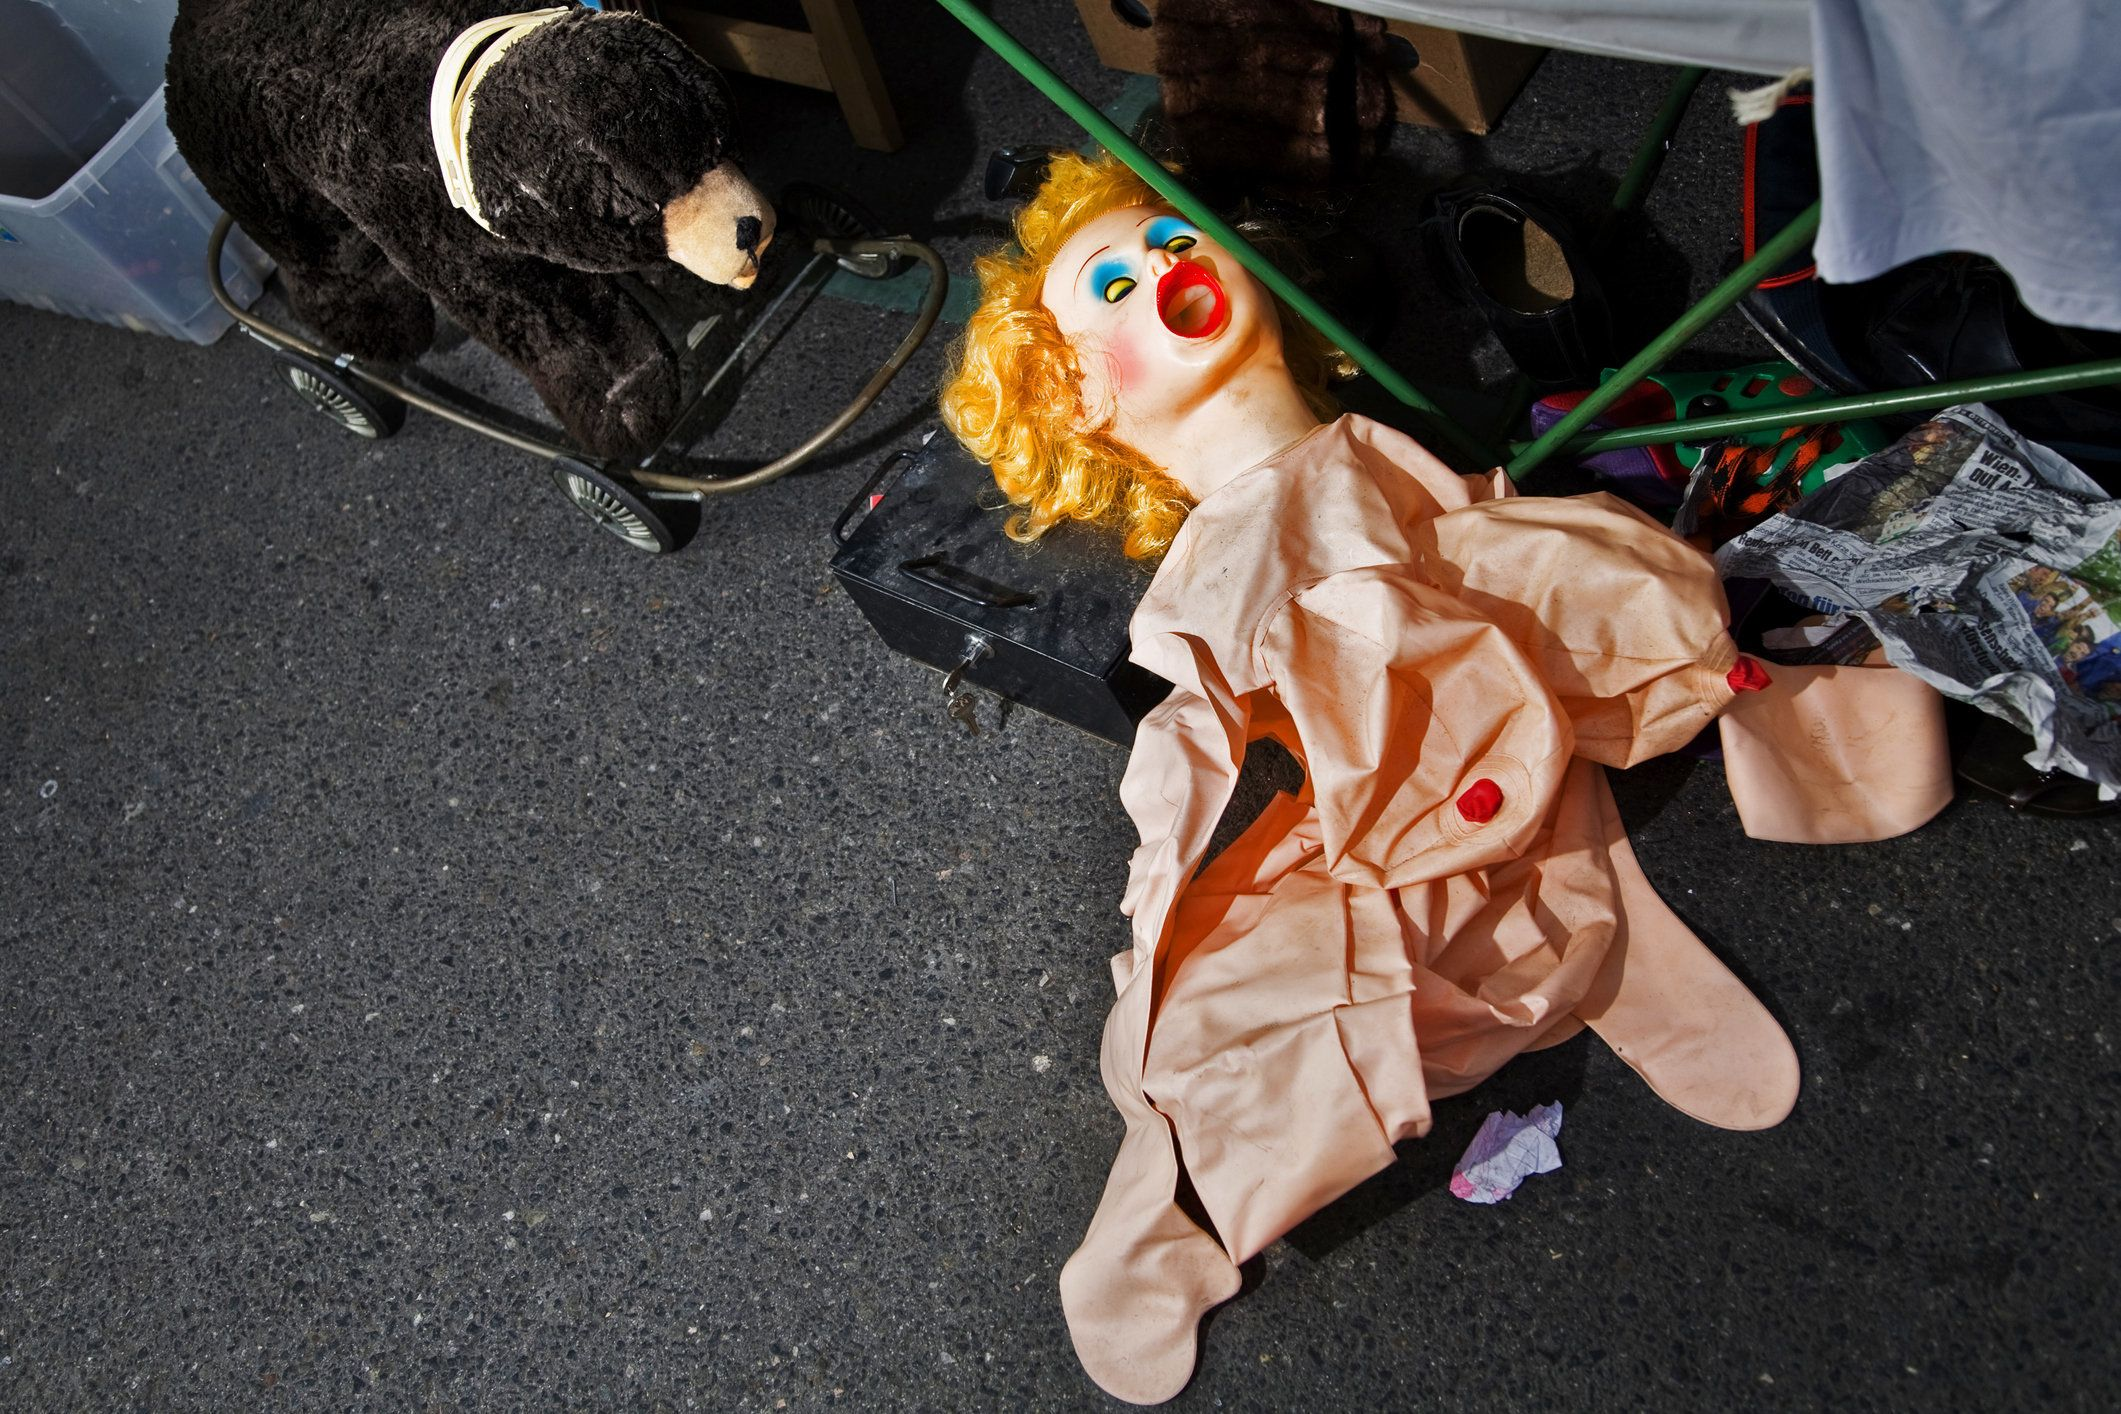 Cops Called To Rescue Lifeless Woman, End Up Saving A Sex Doll